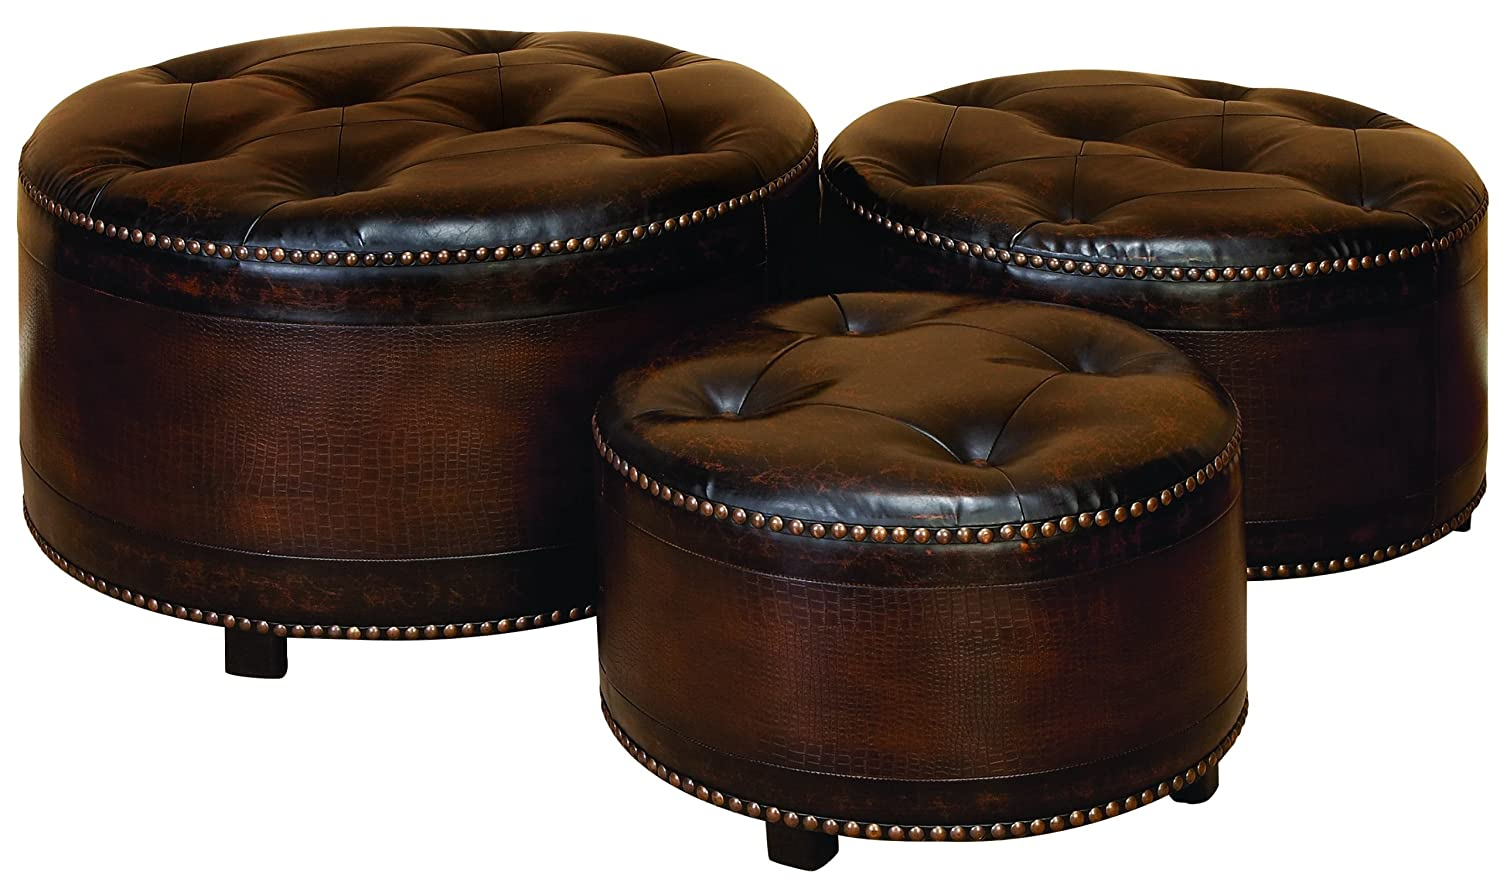 in home faux p en ottomans x living decor leather ottoman categories inch room avalon small the canada depot furniture